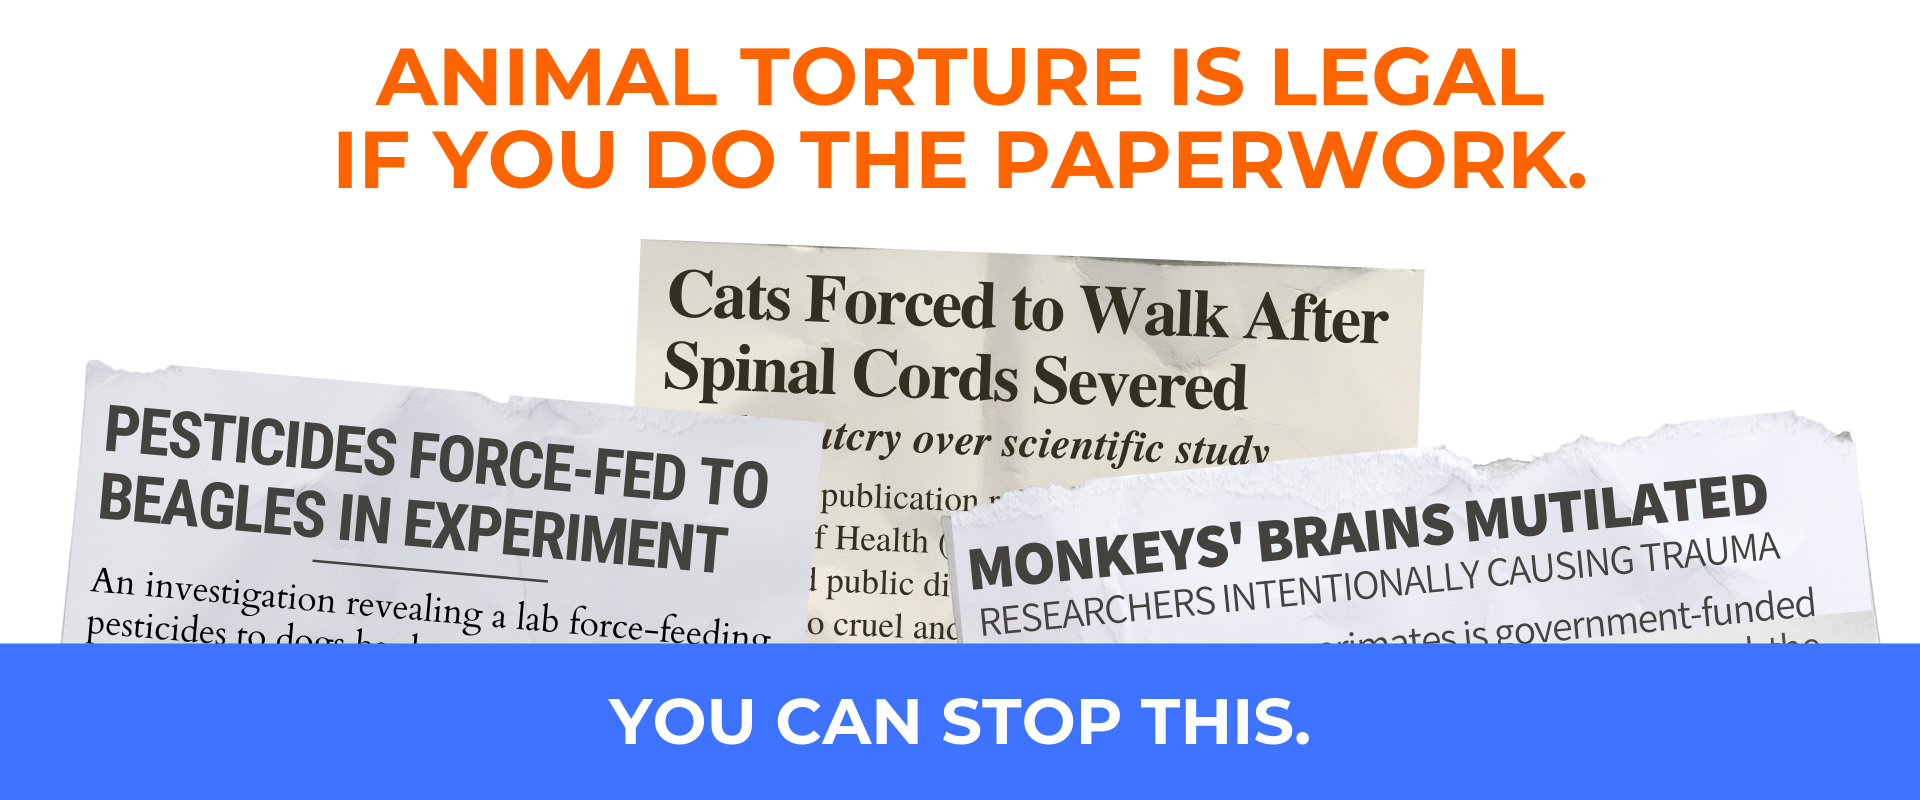 Web.Stop Legal Animal Torture.png